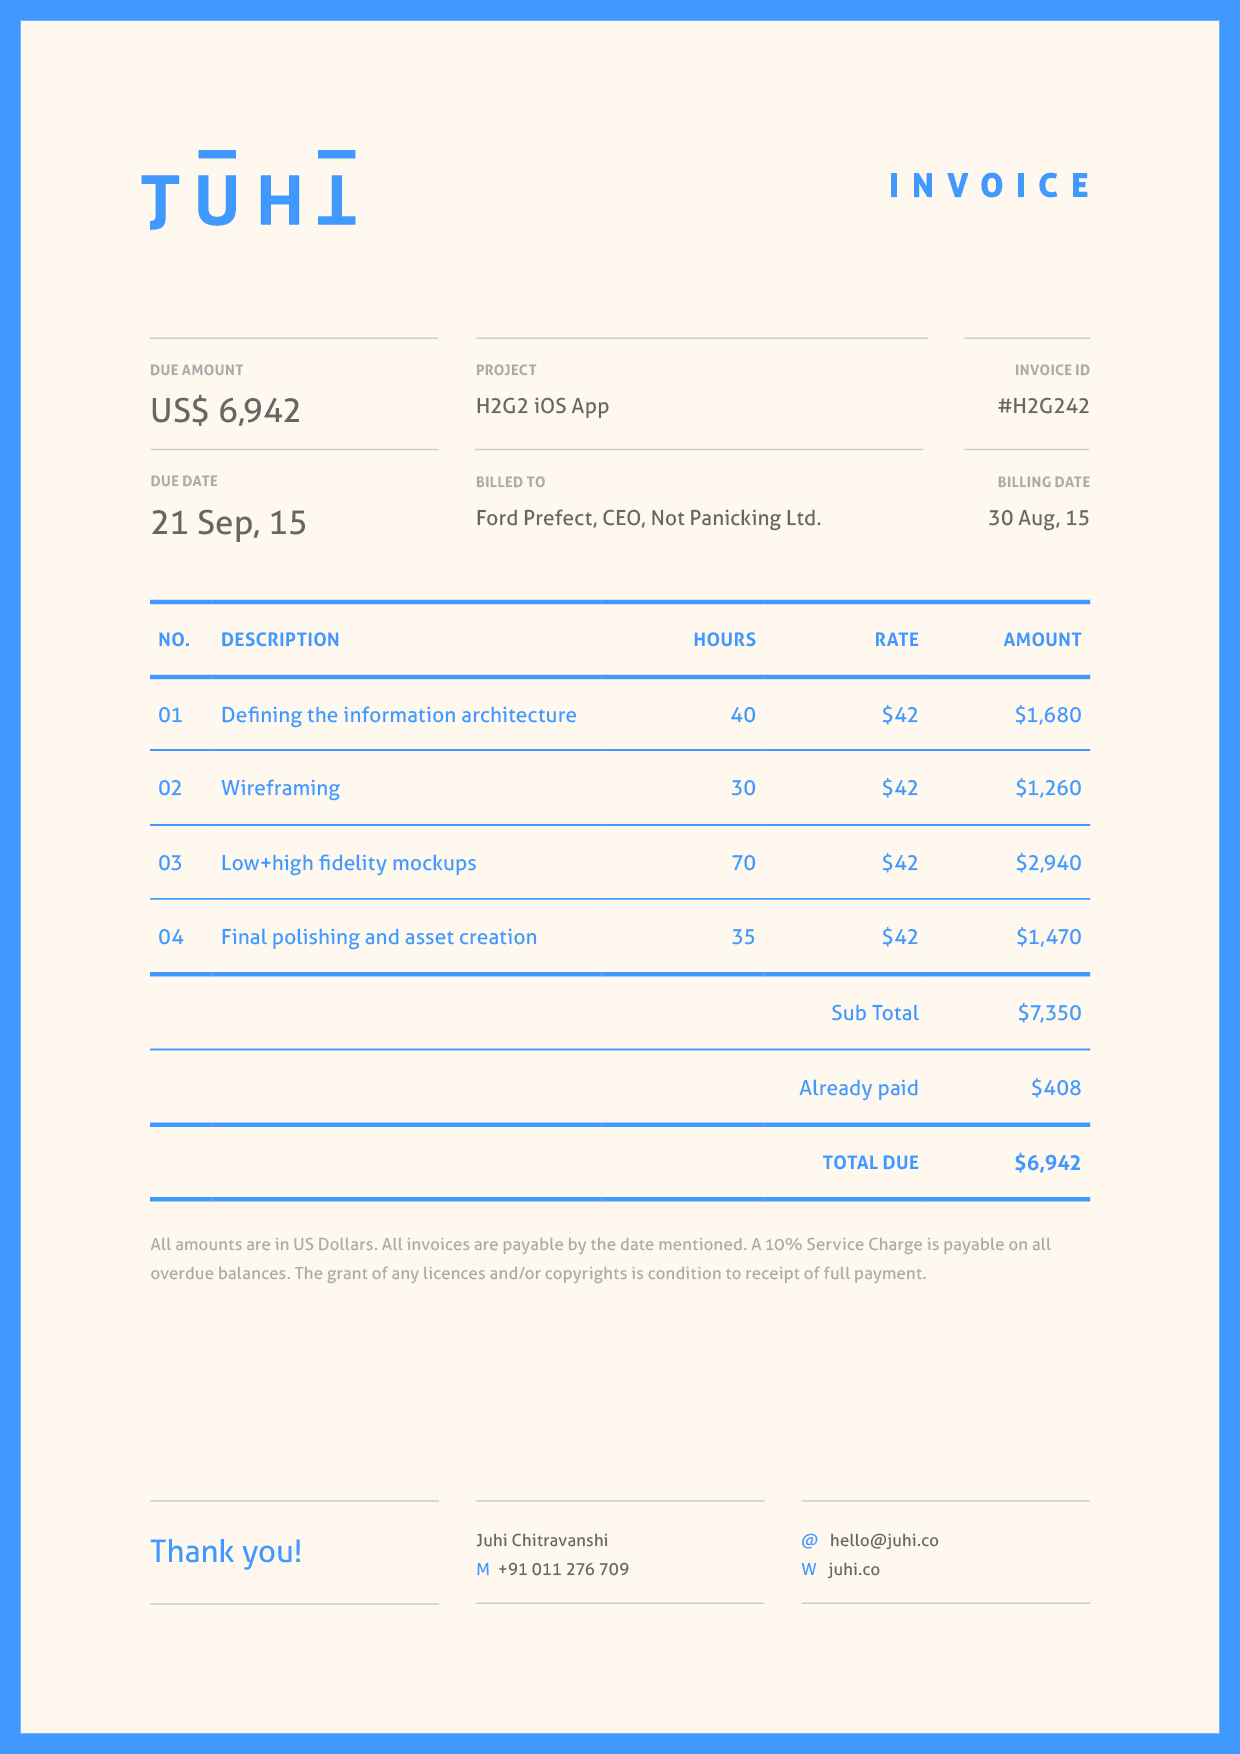 Hius  Gorgeous Dont Hold Back On Your Invoice  Inspiring Designs  With Interesting Invoice By Juhi Chitravanshi Follow With Delectable Freelance Invoice Templates Also Print Blank Invoice In Addition Invoice Programs For Mac And Beautiful Invoice As Well As Detailed Invoice Template Additionally Order Invoice Template From Inspirationfeedcom With Hius  Interesting Dont Hold Back On Your Invoice  Inspiring Designs  With Delectable Invoice By Juhi Chitravanshi Follow And Gorgeous Freelance Invoice Templates Also Print Blank Invoice In Addition Invoice Programs For Mac From Inspirationfeedcom